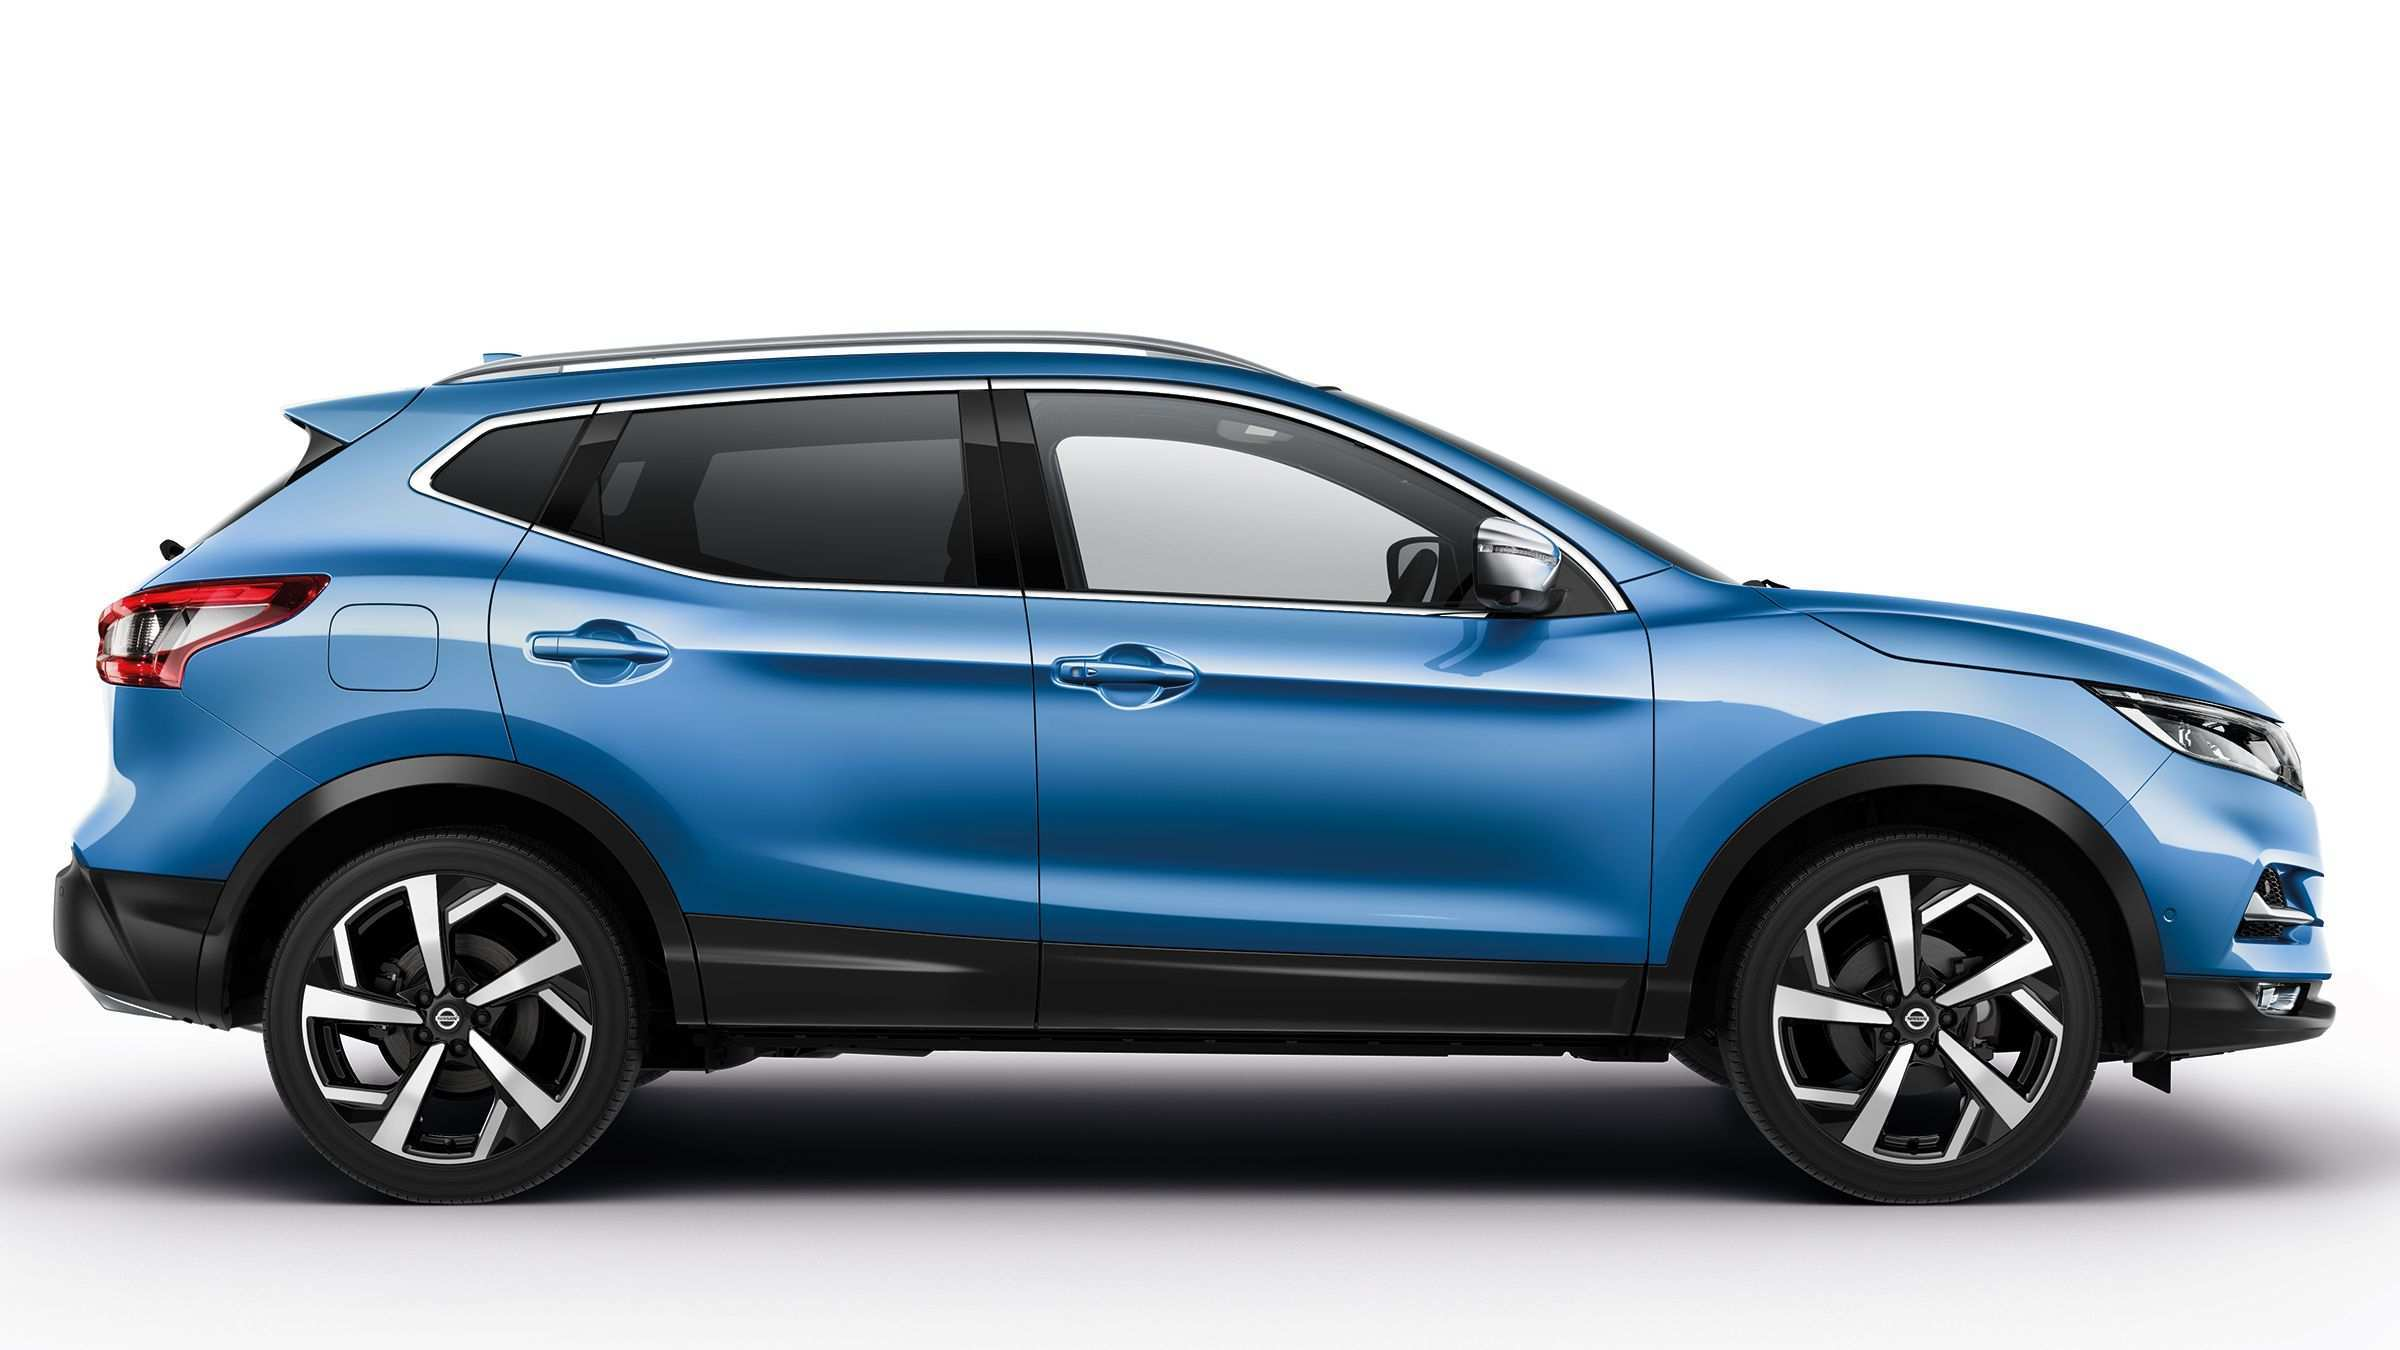 20 New Nissan Qashqai 2020 Colors Review with Nissan Qashqai 2020 Colors